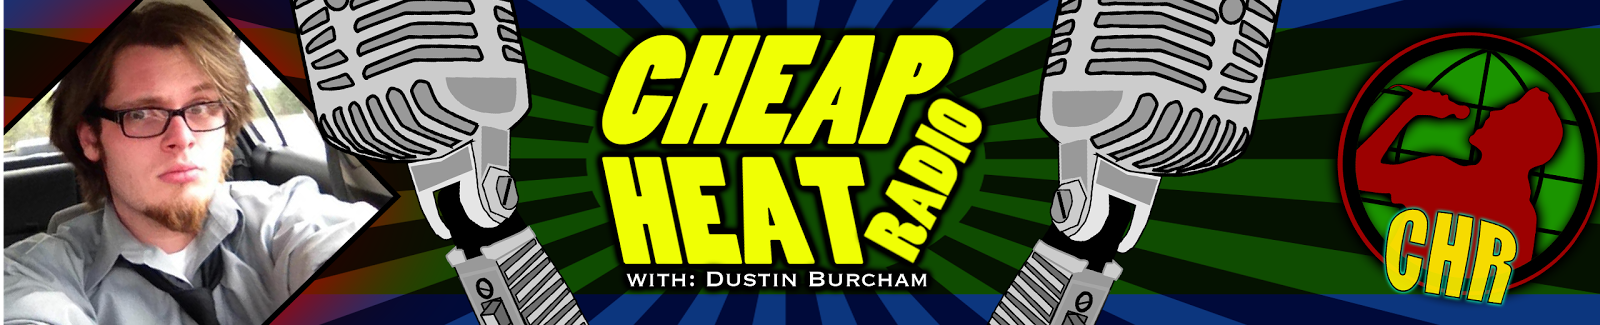 Cheap Heat Radio